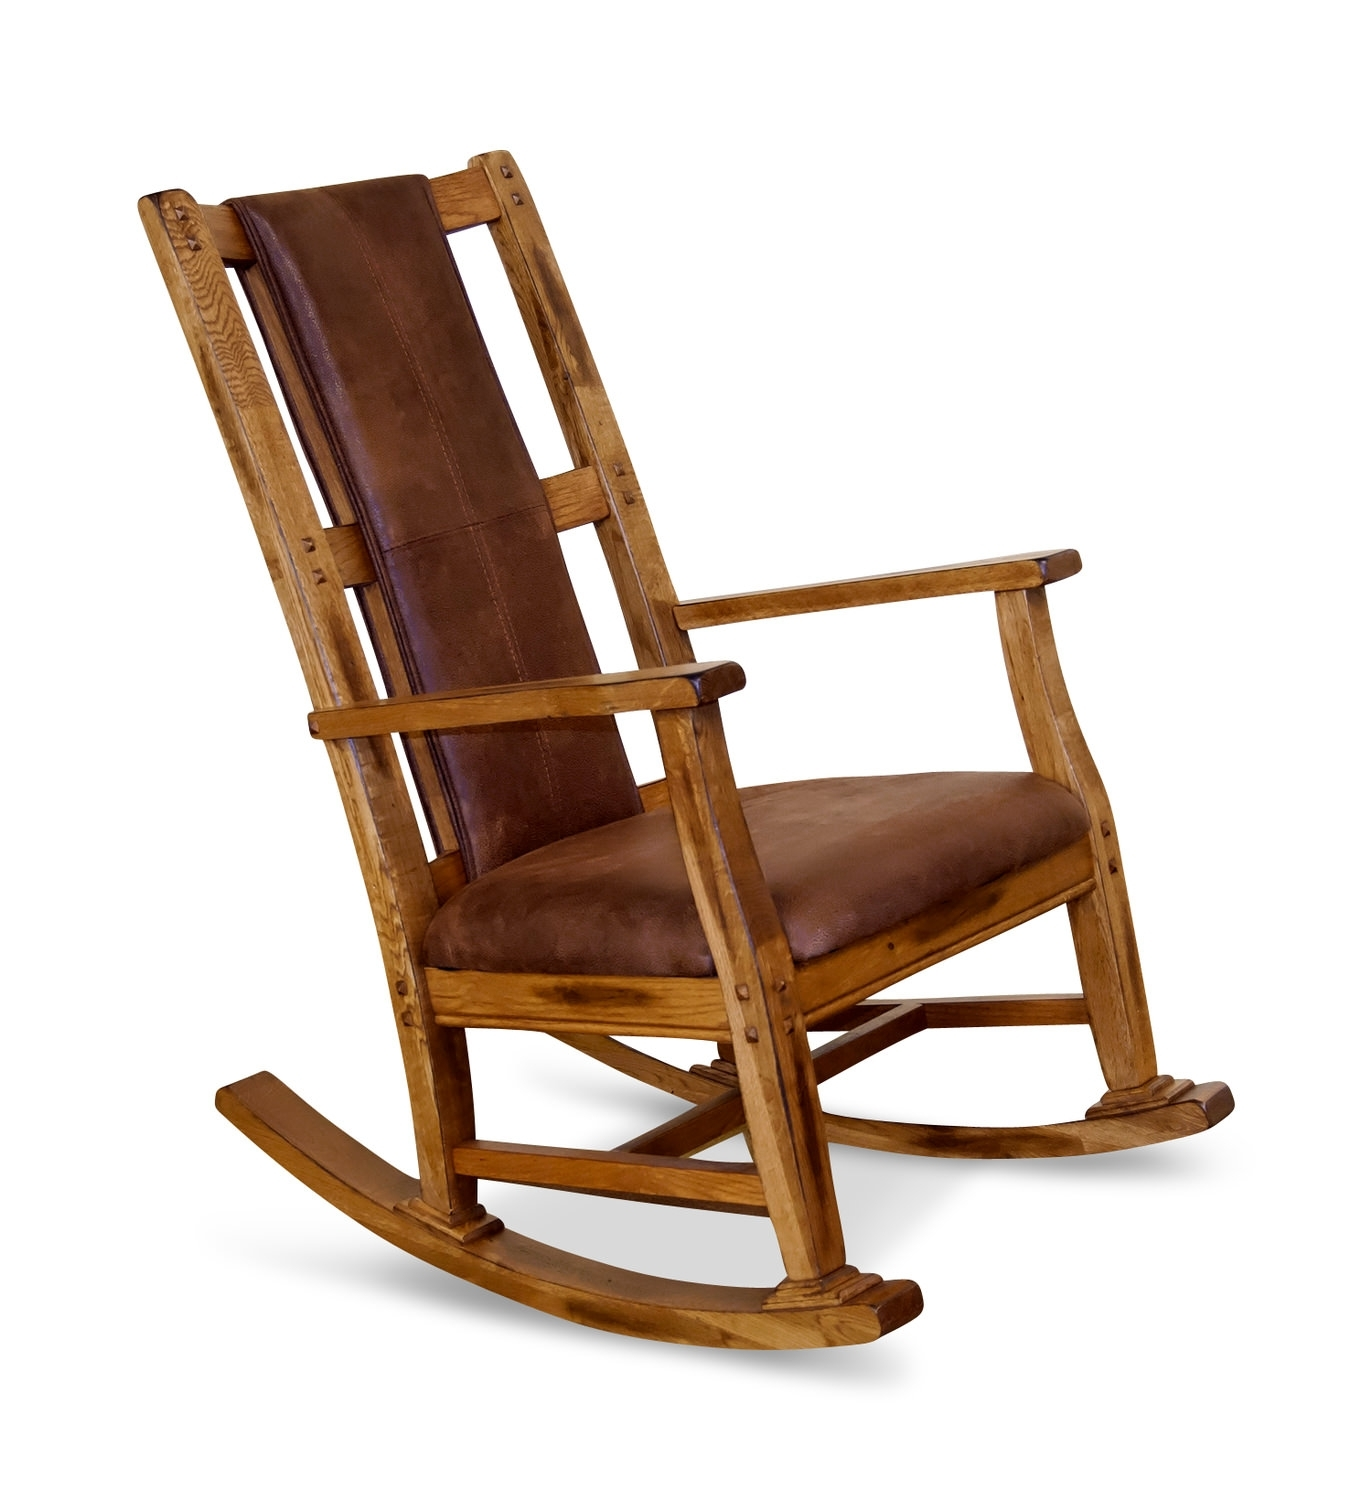 Sedona Rocking Chair | Hom Furniture In Rocking Chairs For Adults (#13 of 15)